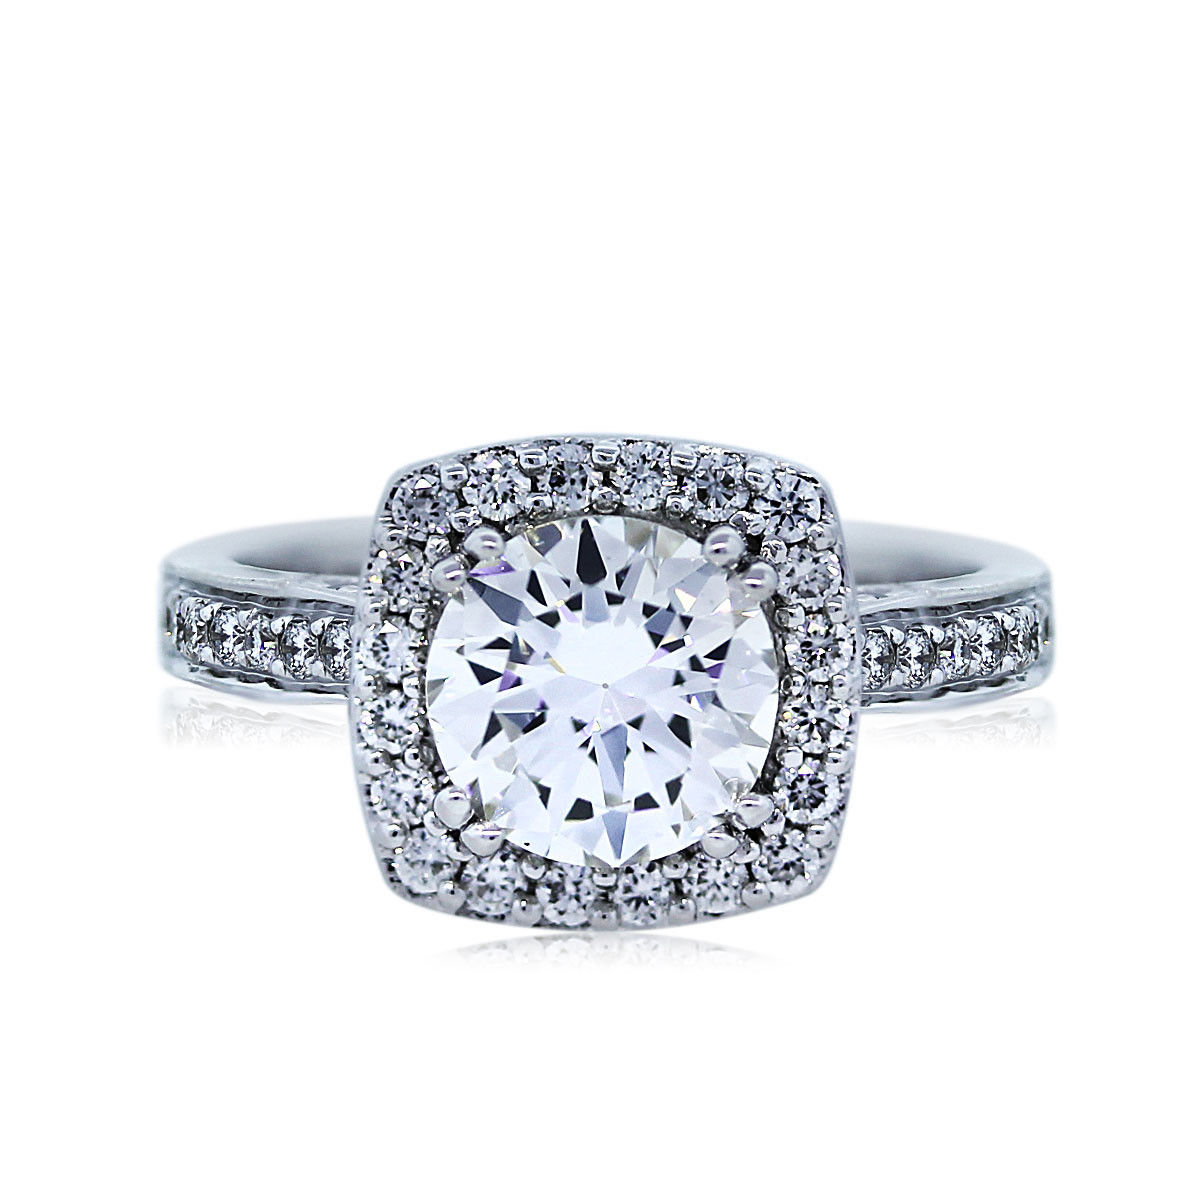 You are Viewing this Stunning 1.03ct Round Brilliant Ring!